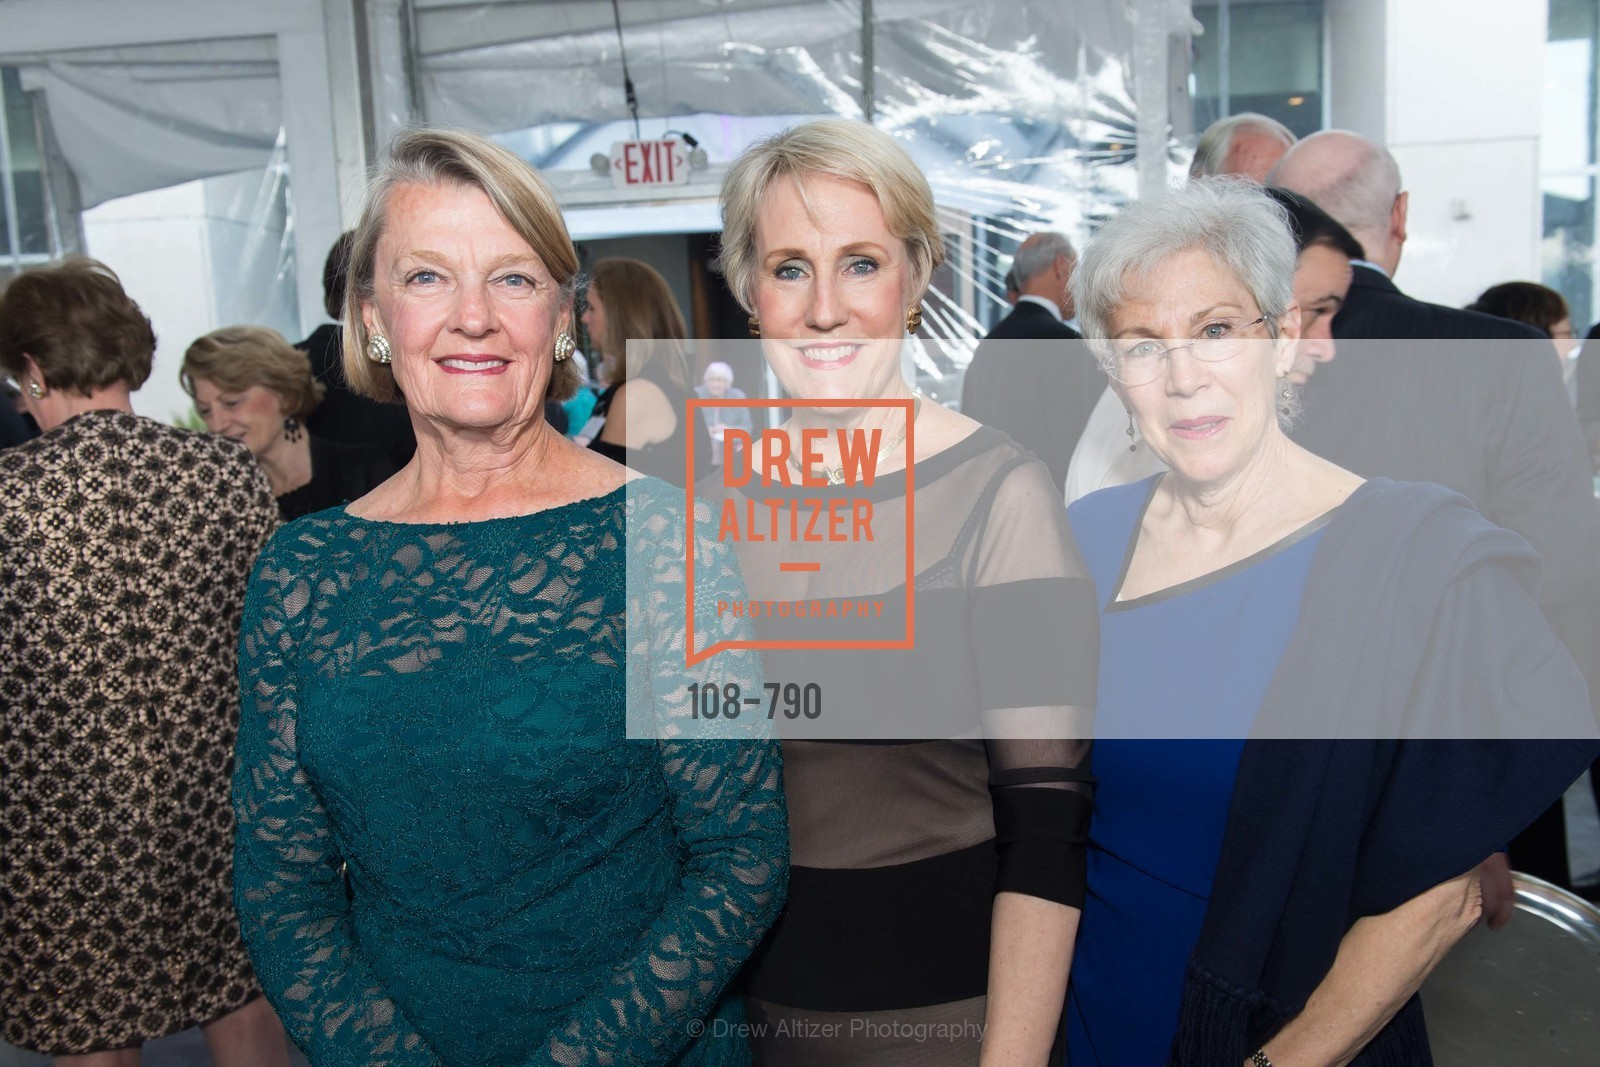 Danette Magilligan, Arlette Monfredini, Jean Heydee, Post War and Contemporary Preview at HEDGE GALLERY, US, April 16th, 2015,Drew Altizer, Drew Altizer Photography, full-service agency, private events, San Francisco photographer, photographer california